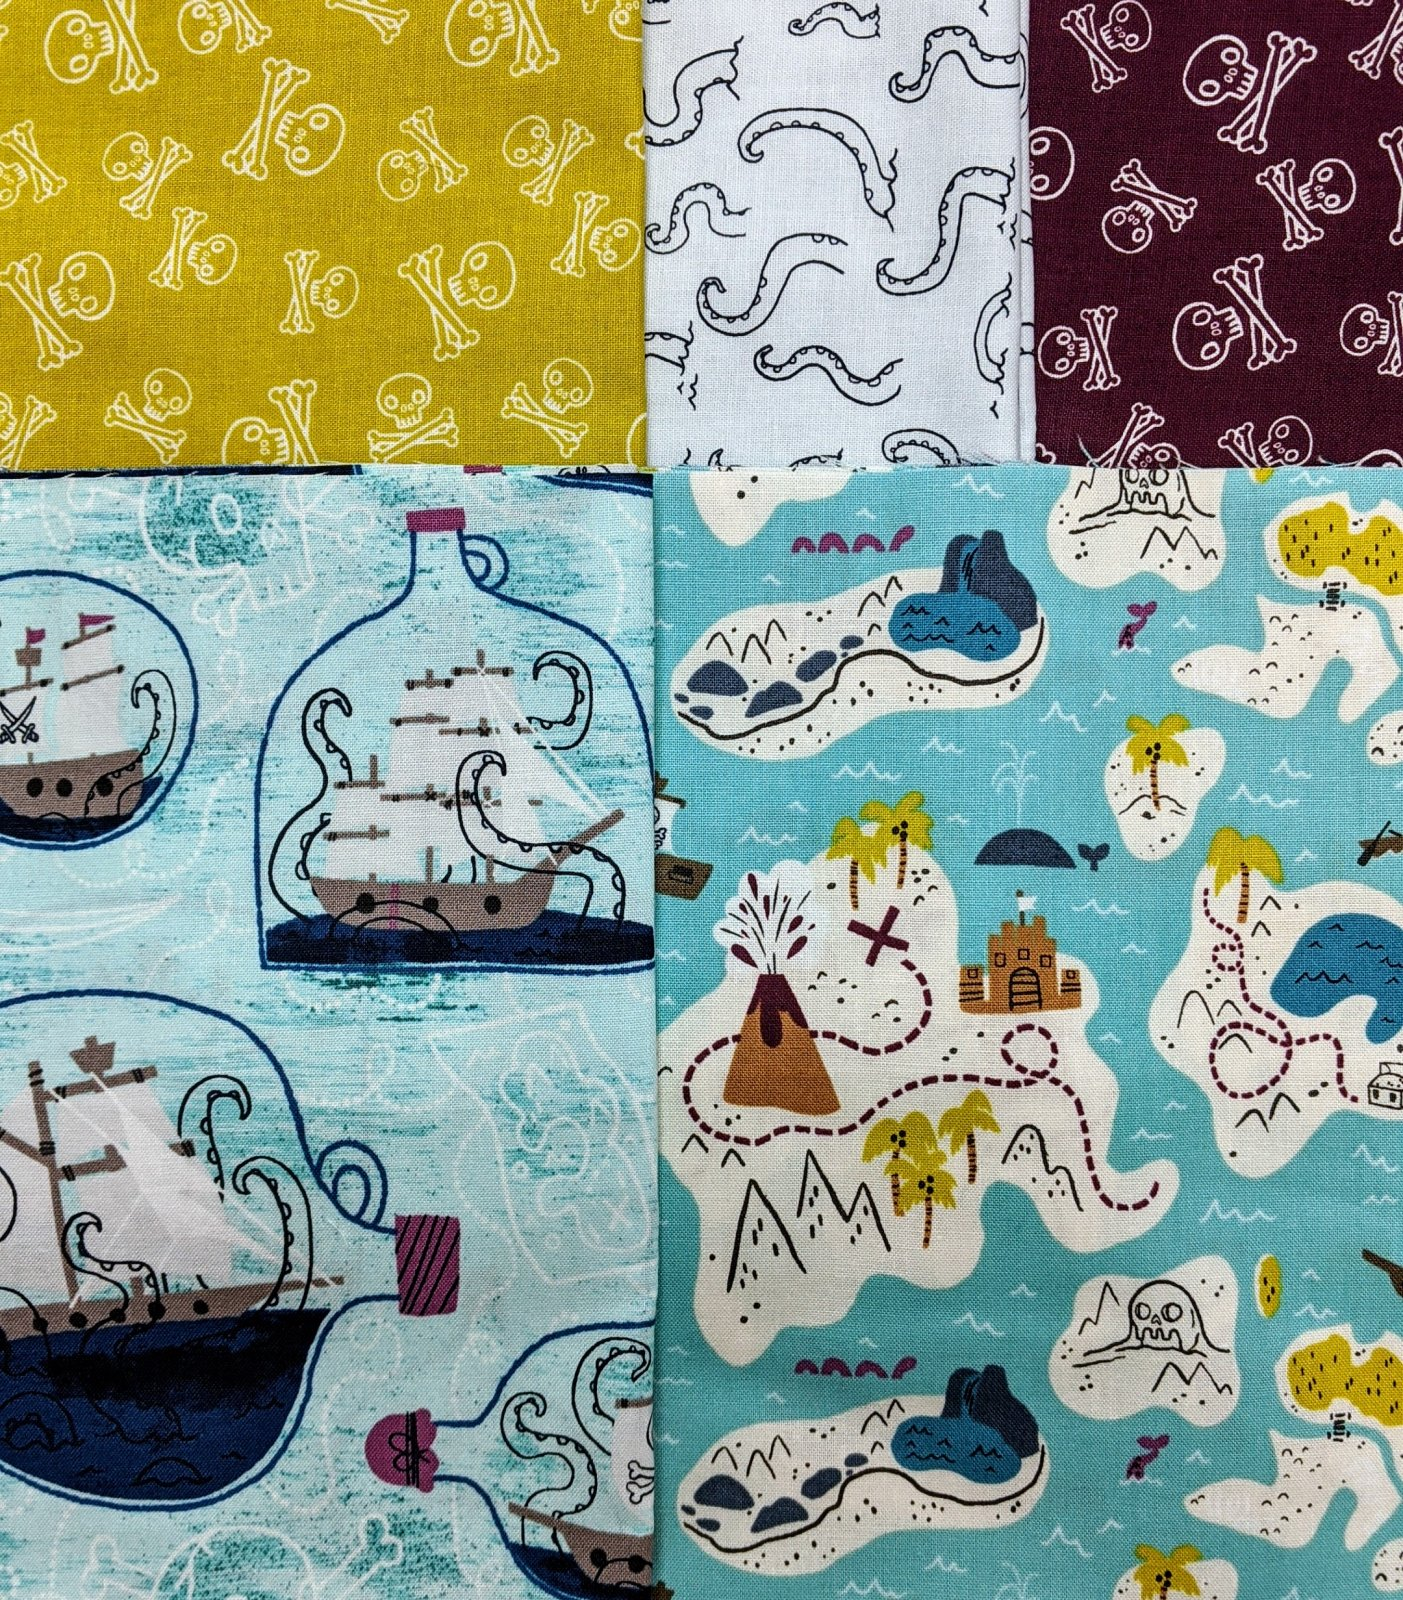 Bundle Kraken 5 Half Yard Cuts